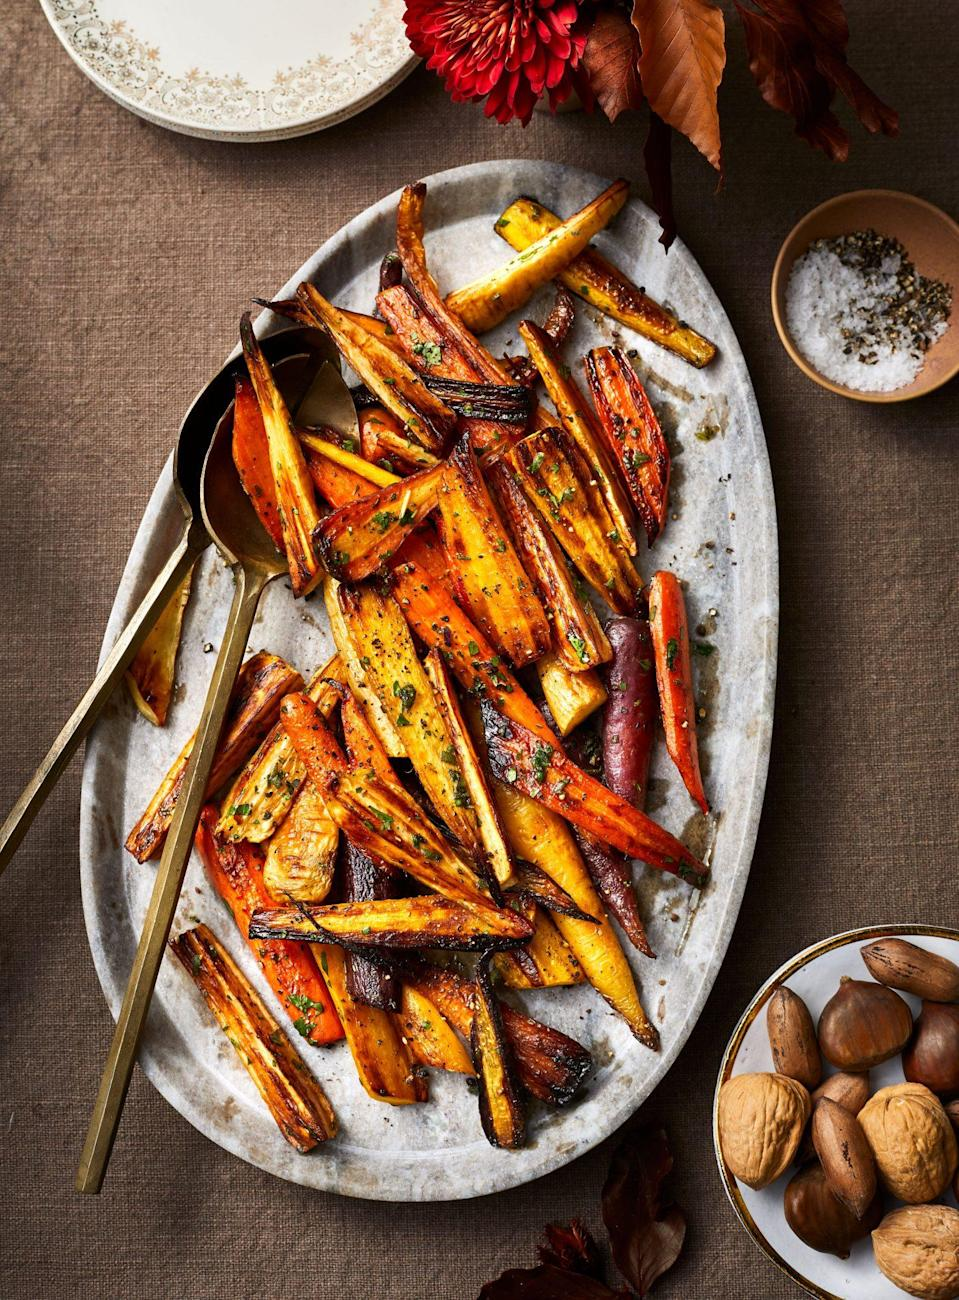 """<p><strong>Recipe: <a href=""""https://www.southernliving.com/recipes/roasted-carrots-and-parsnips"""" rel=""""nofollow noopener"""" target=""""_blank"""" data-ylk=""""slk:Roasted Carrots and Parsnips"""" class=""""link rapid-noclick-resp"""">Roasted Carrots and Parsnips</a></strong></p> <p>If your family likes sweet potatoes, you can add them to the mix as well. </p>"""